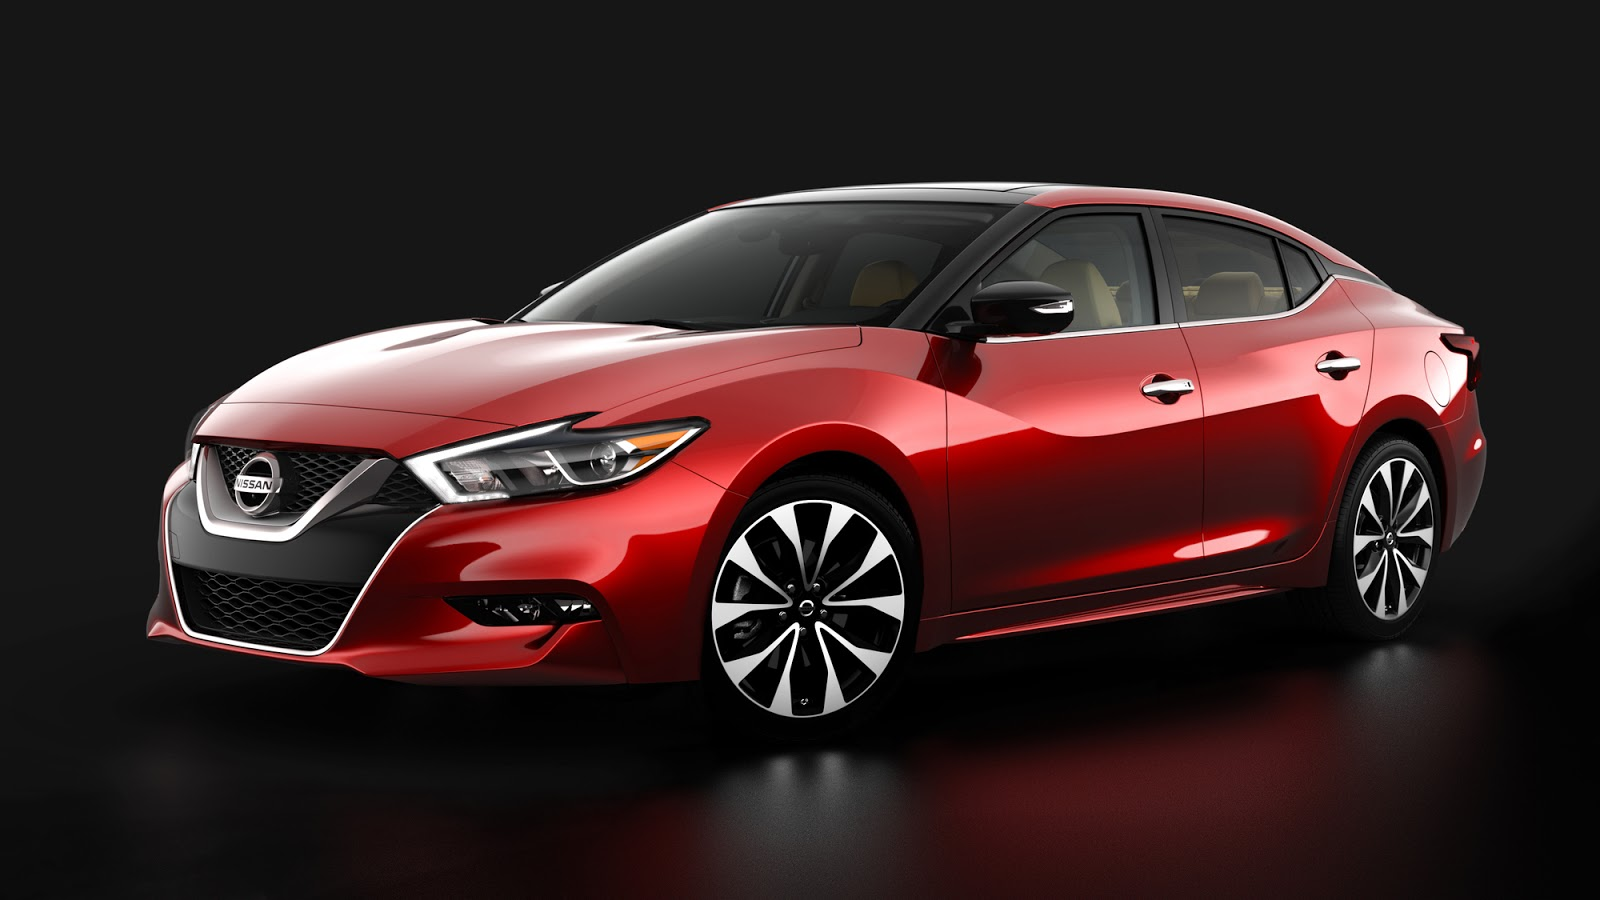 2016 nissan maxima first photos released ahead of new york. Black Bedroom Furniture Sets. Home Design Ideas